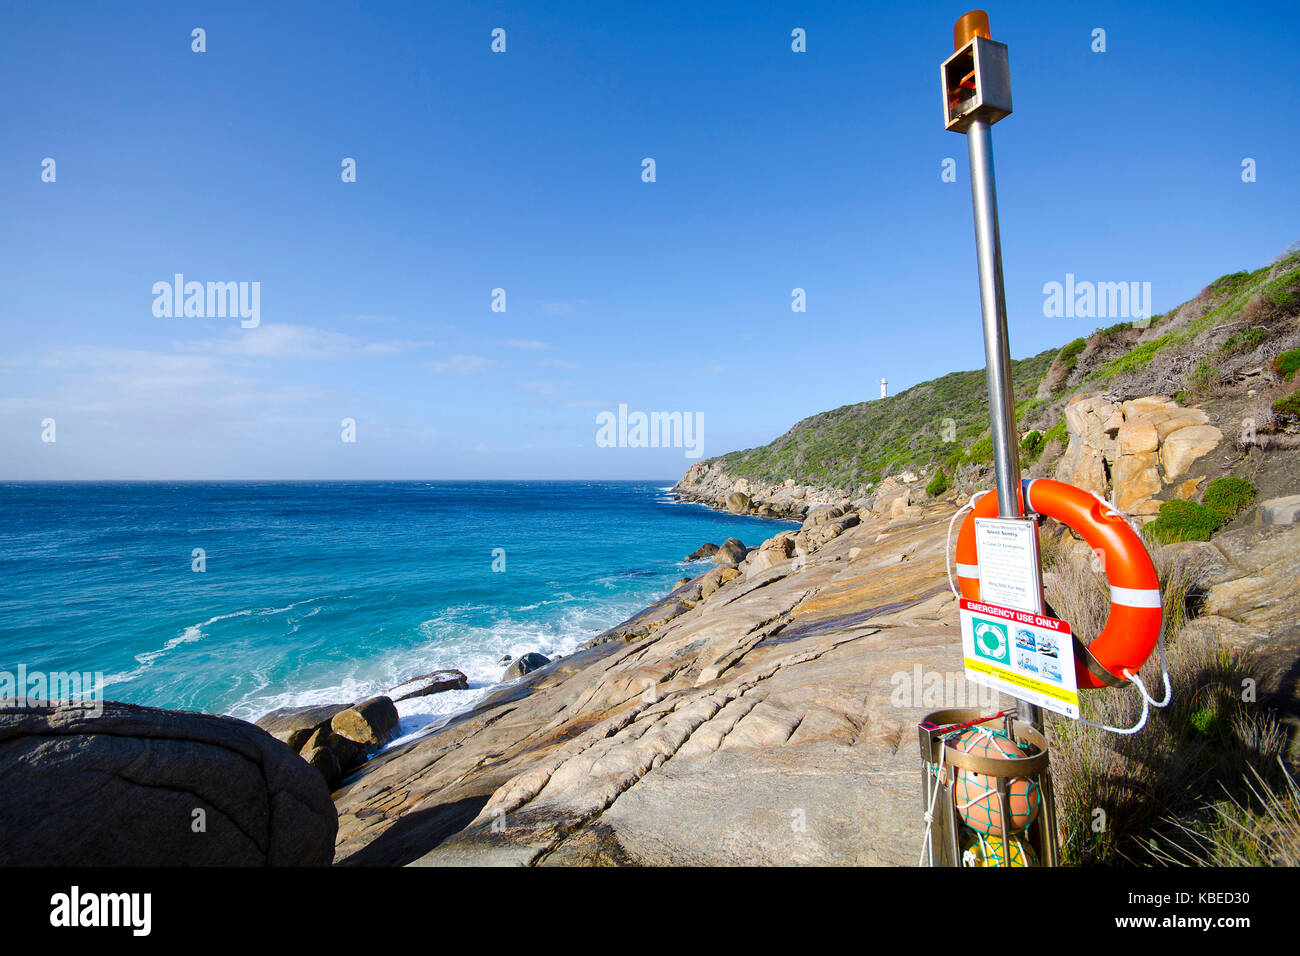 A lifebuoy at the ready on a coast notoriously dangerous for the unpredictable waves and steep slippery rock. - Stock Image